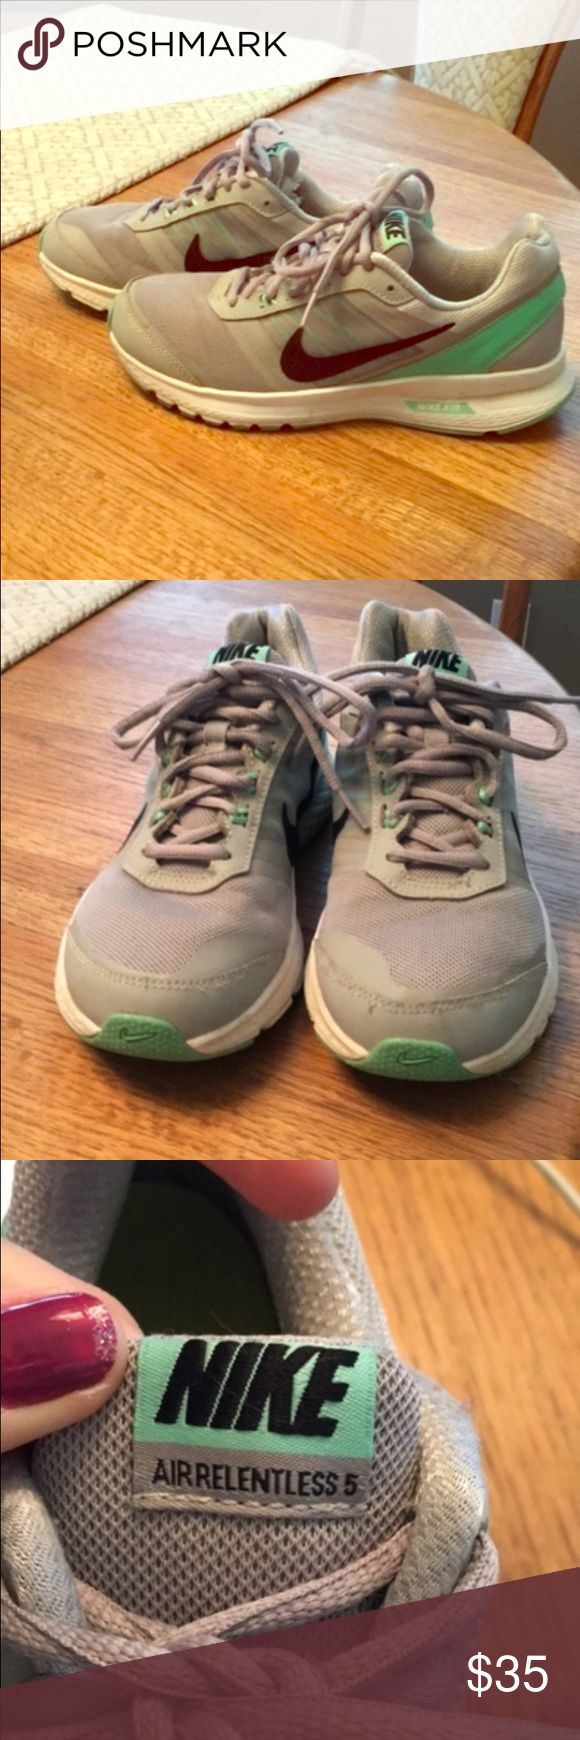 Nike Flex RN running shoe. Mint and Grey. Nike Flex RN running shoe. Mint and Grey. Some wear. Still look great. Nike Shoes Athletic Shoes